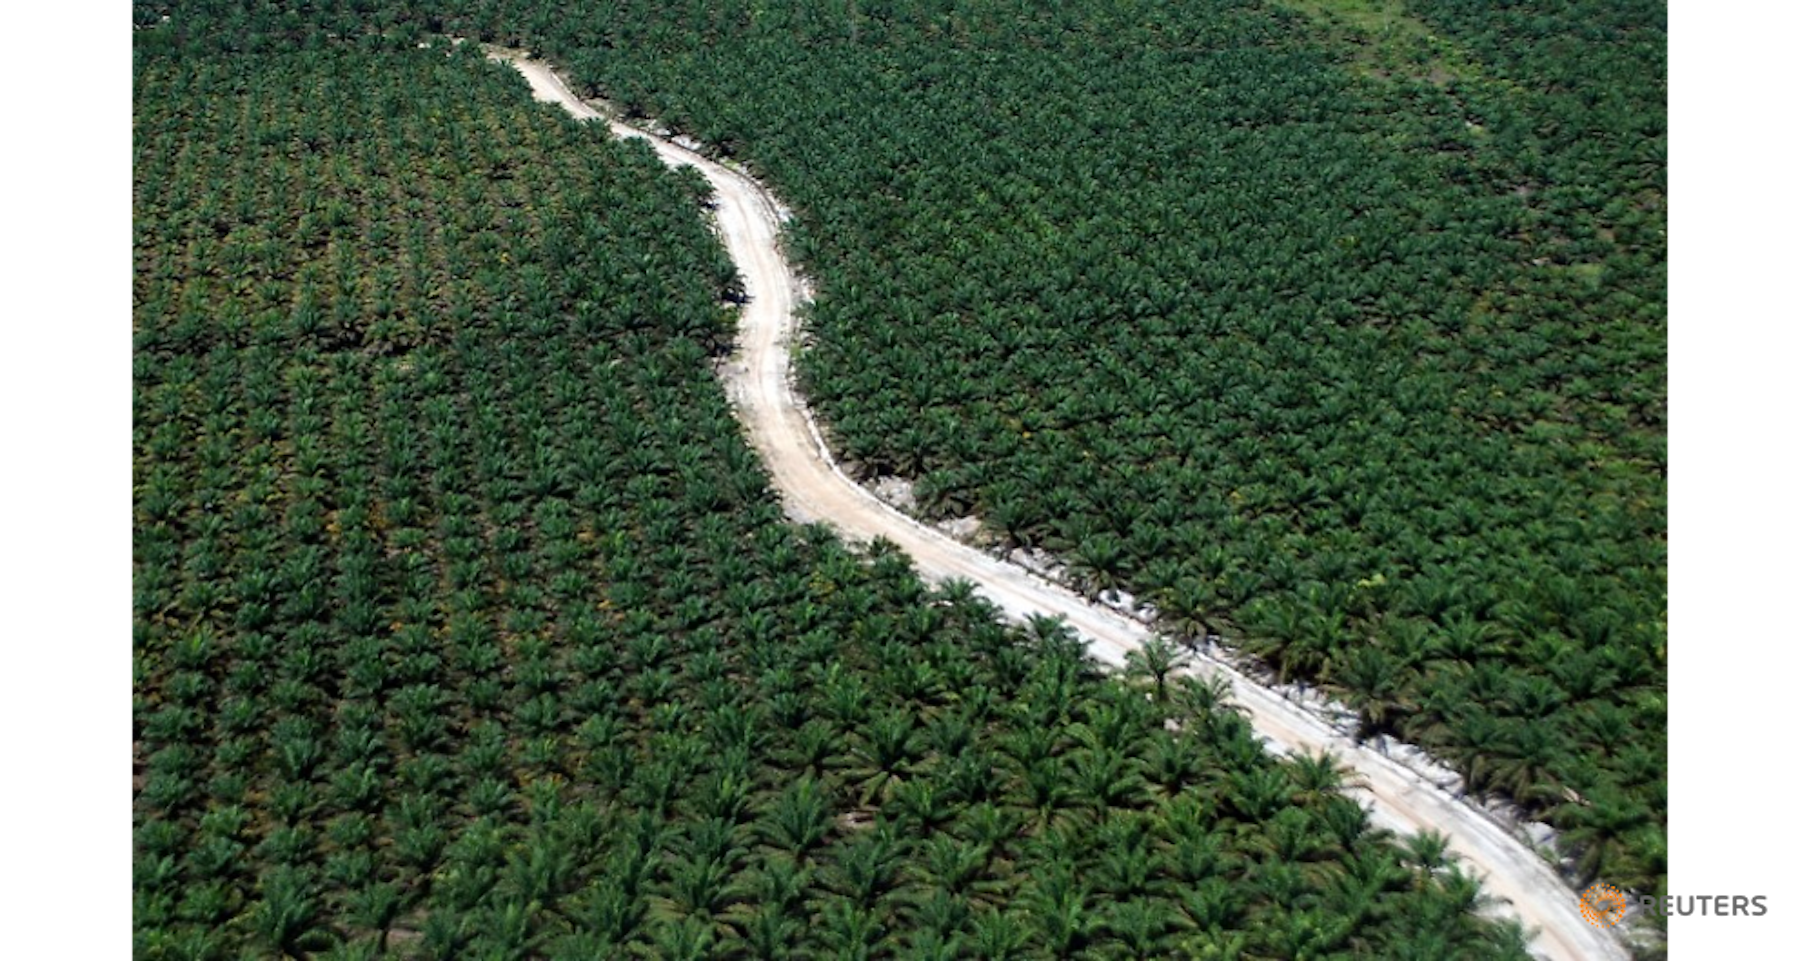 roundtable-on-sustainable-palm-oil-riau-rainforest-plantation